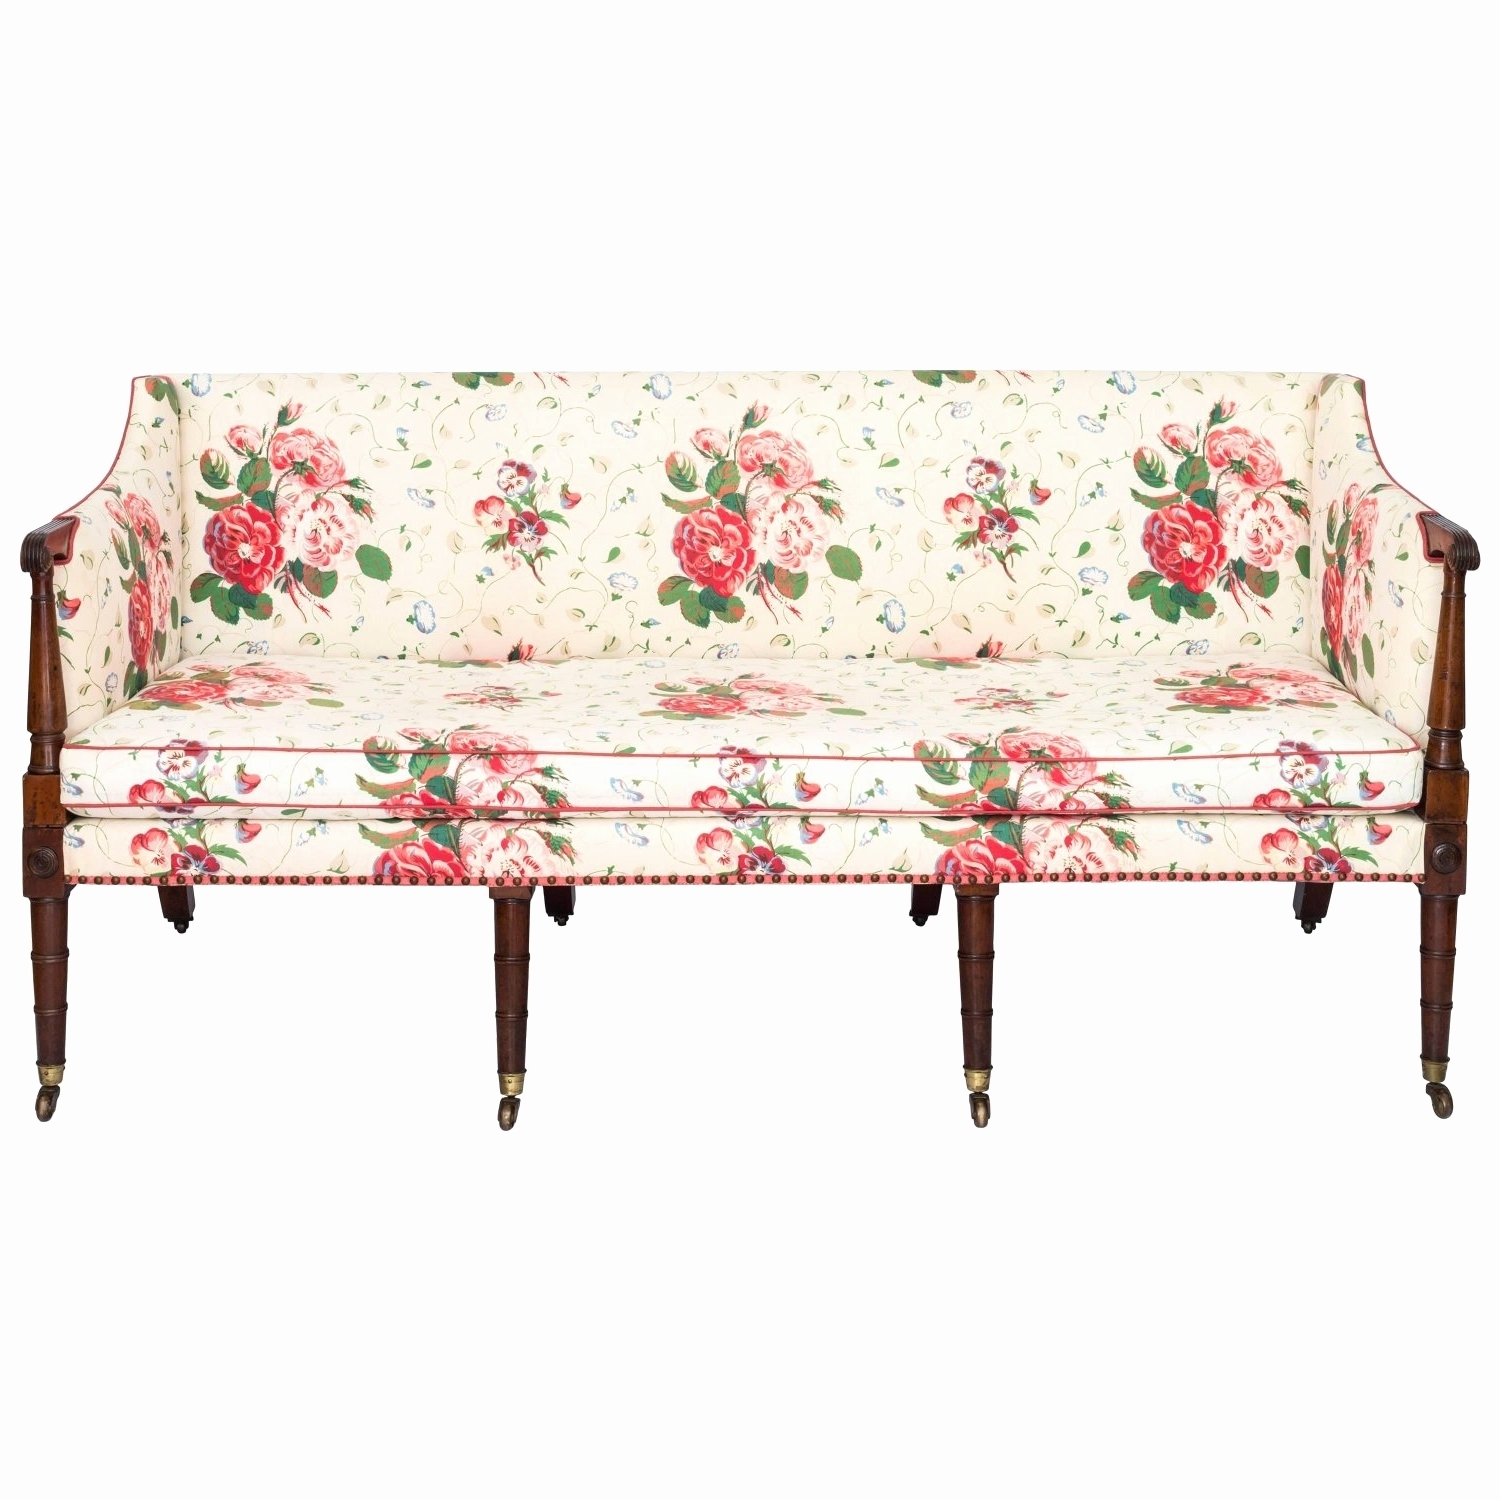 Chintz Fabric Sofas With Trendy Armchair : Modern Chintz Schlocky Synonym Chintz Curtains Chintz (View 7 of 20)